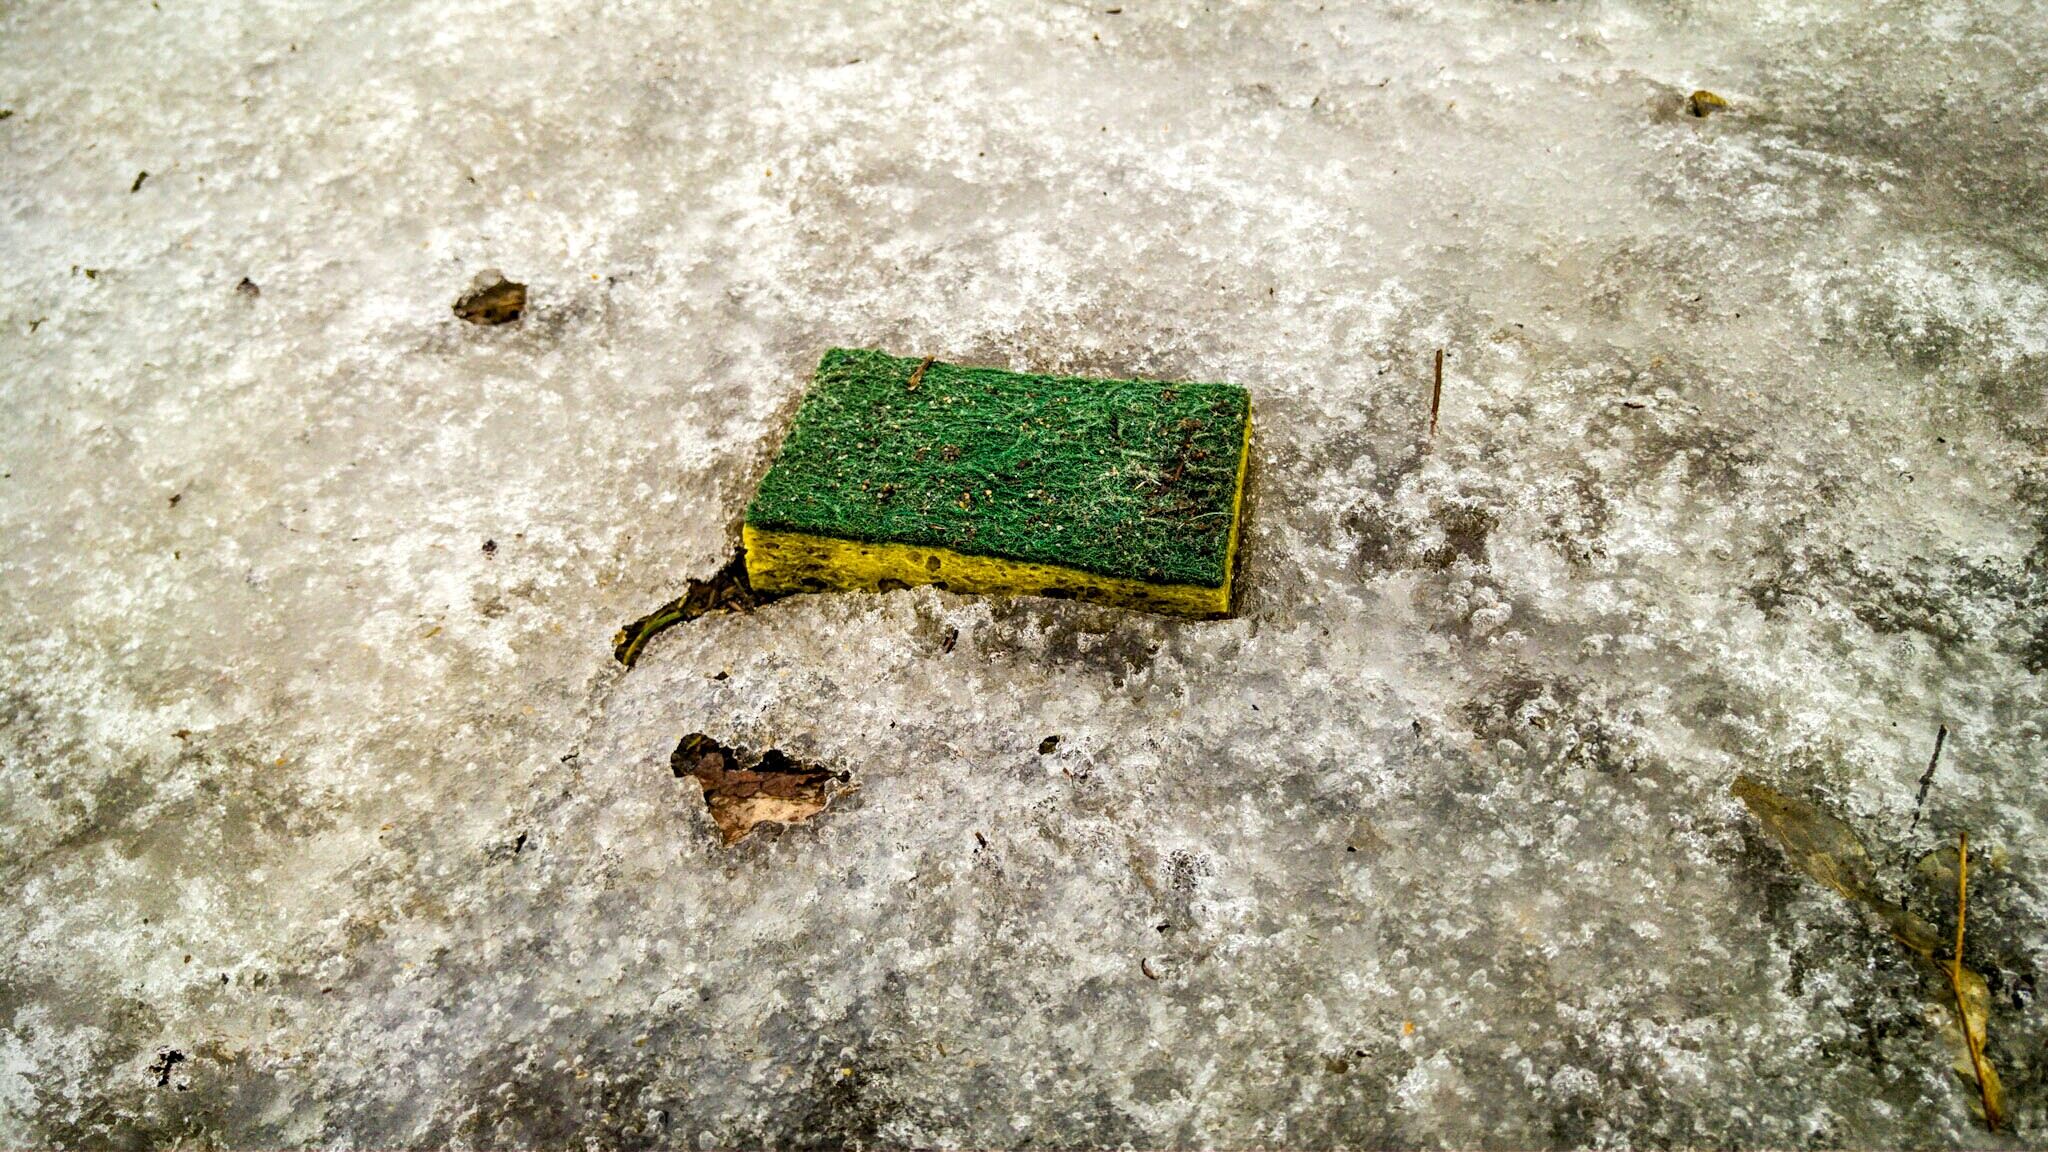 A sponge. There is a story here - about dishes and misguided attempt at cleaning up. I'm sure of it.